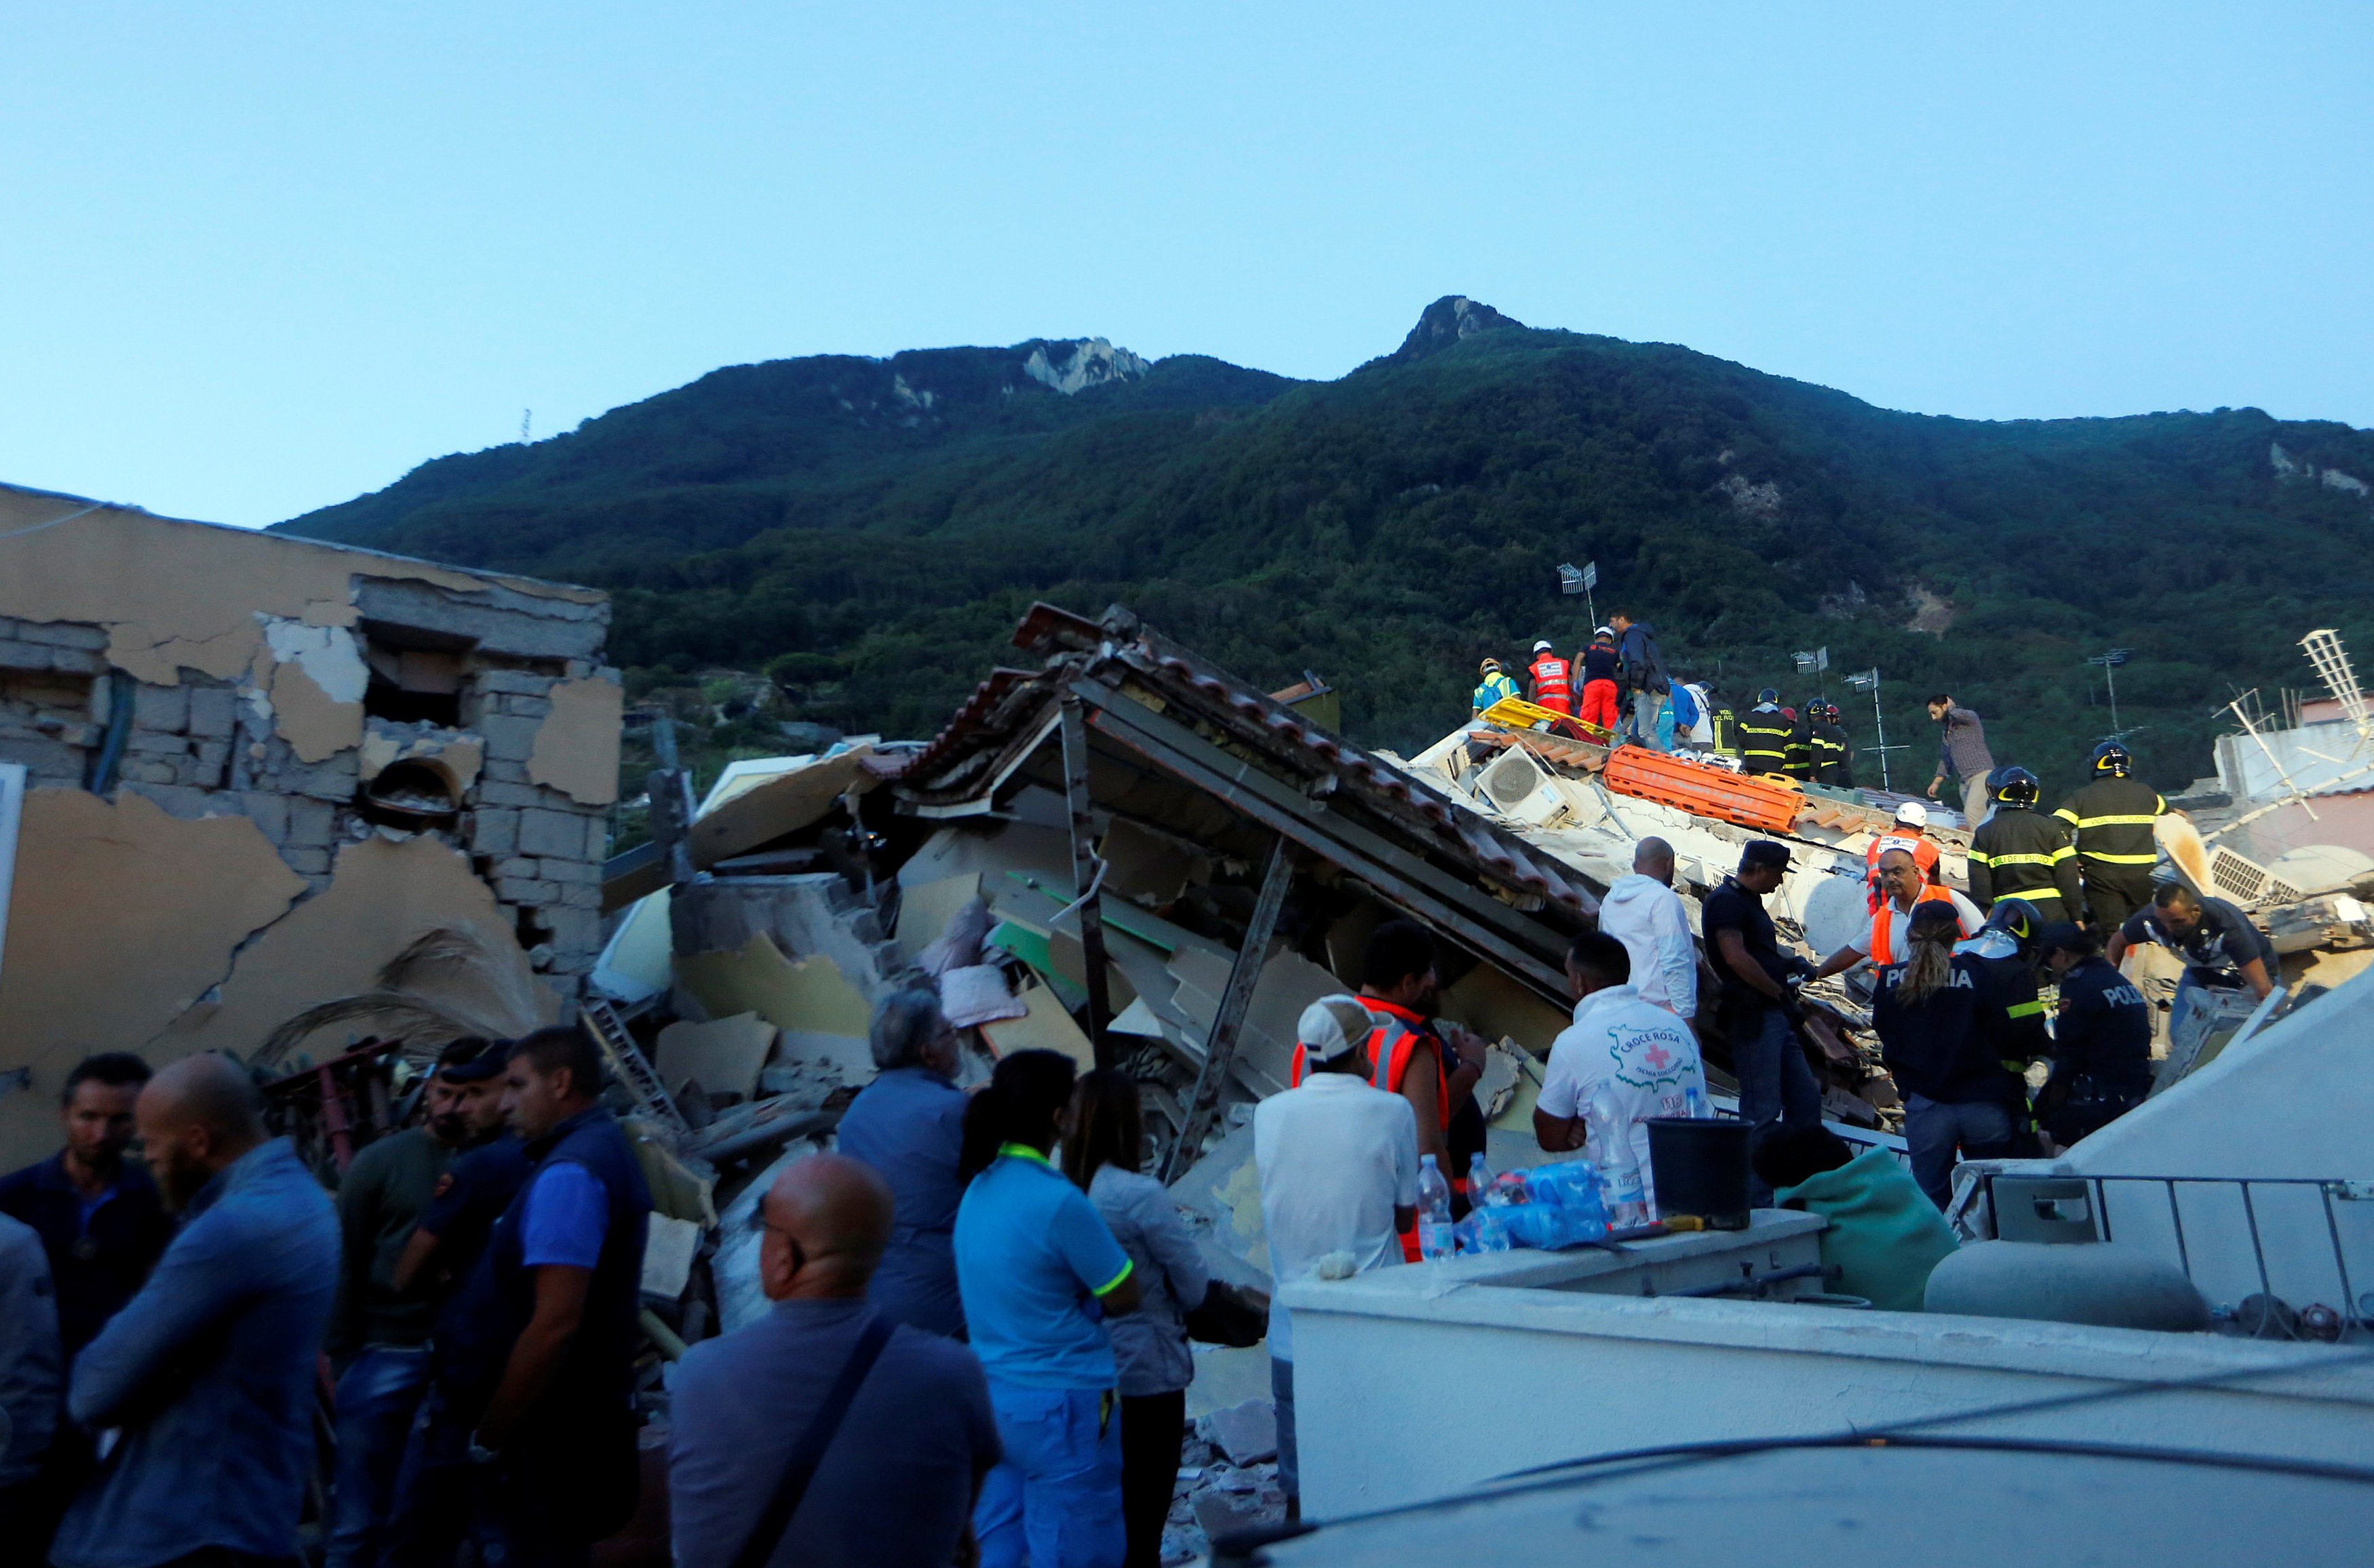 Rescue workers check a collapsed house after an earthquake hit the island of Ischia, off the coast of Naples, Italy August 22, 2017. REUTERS/Ciro De Luca